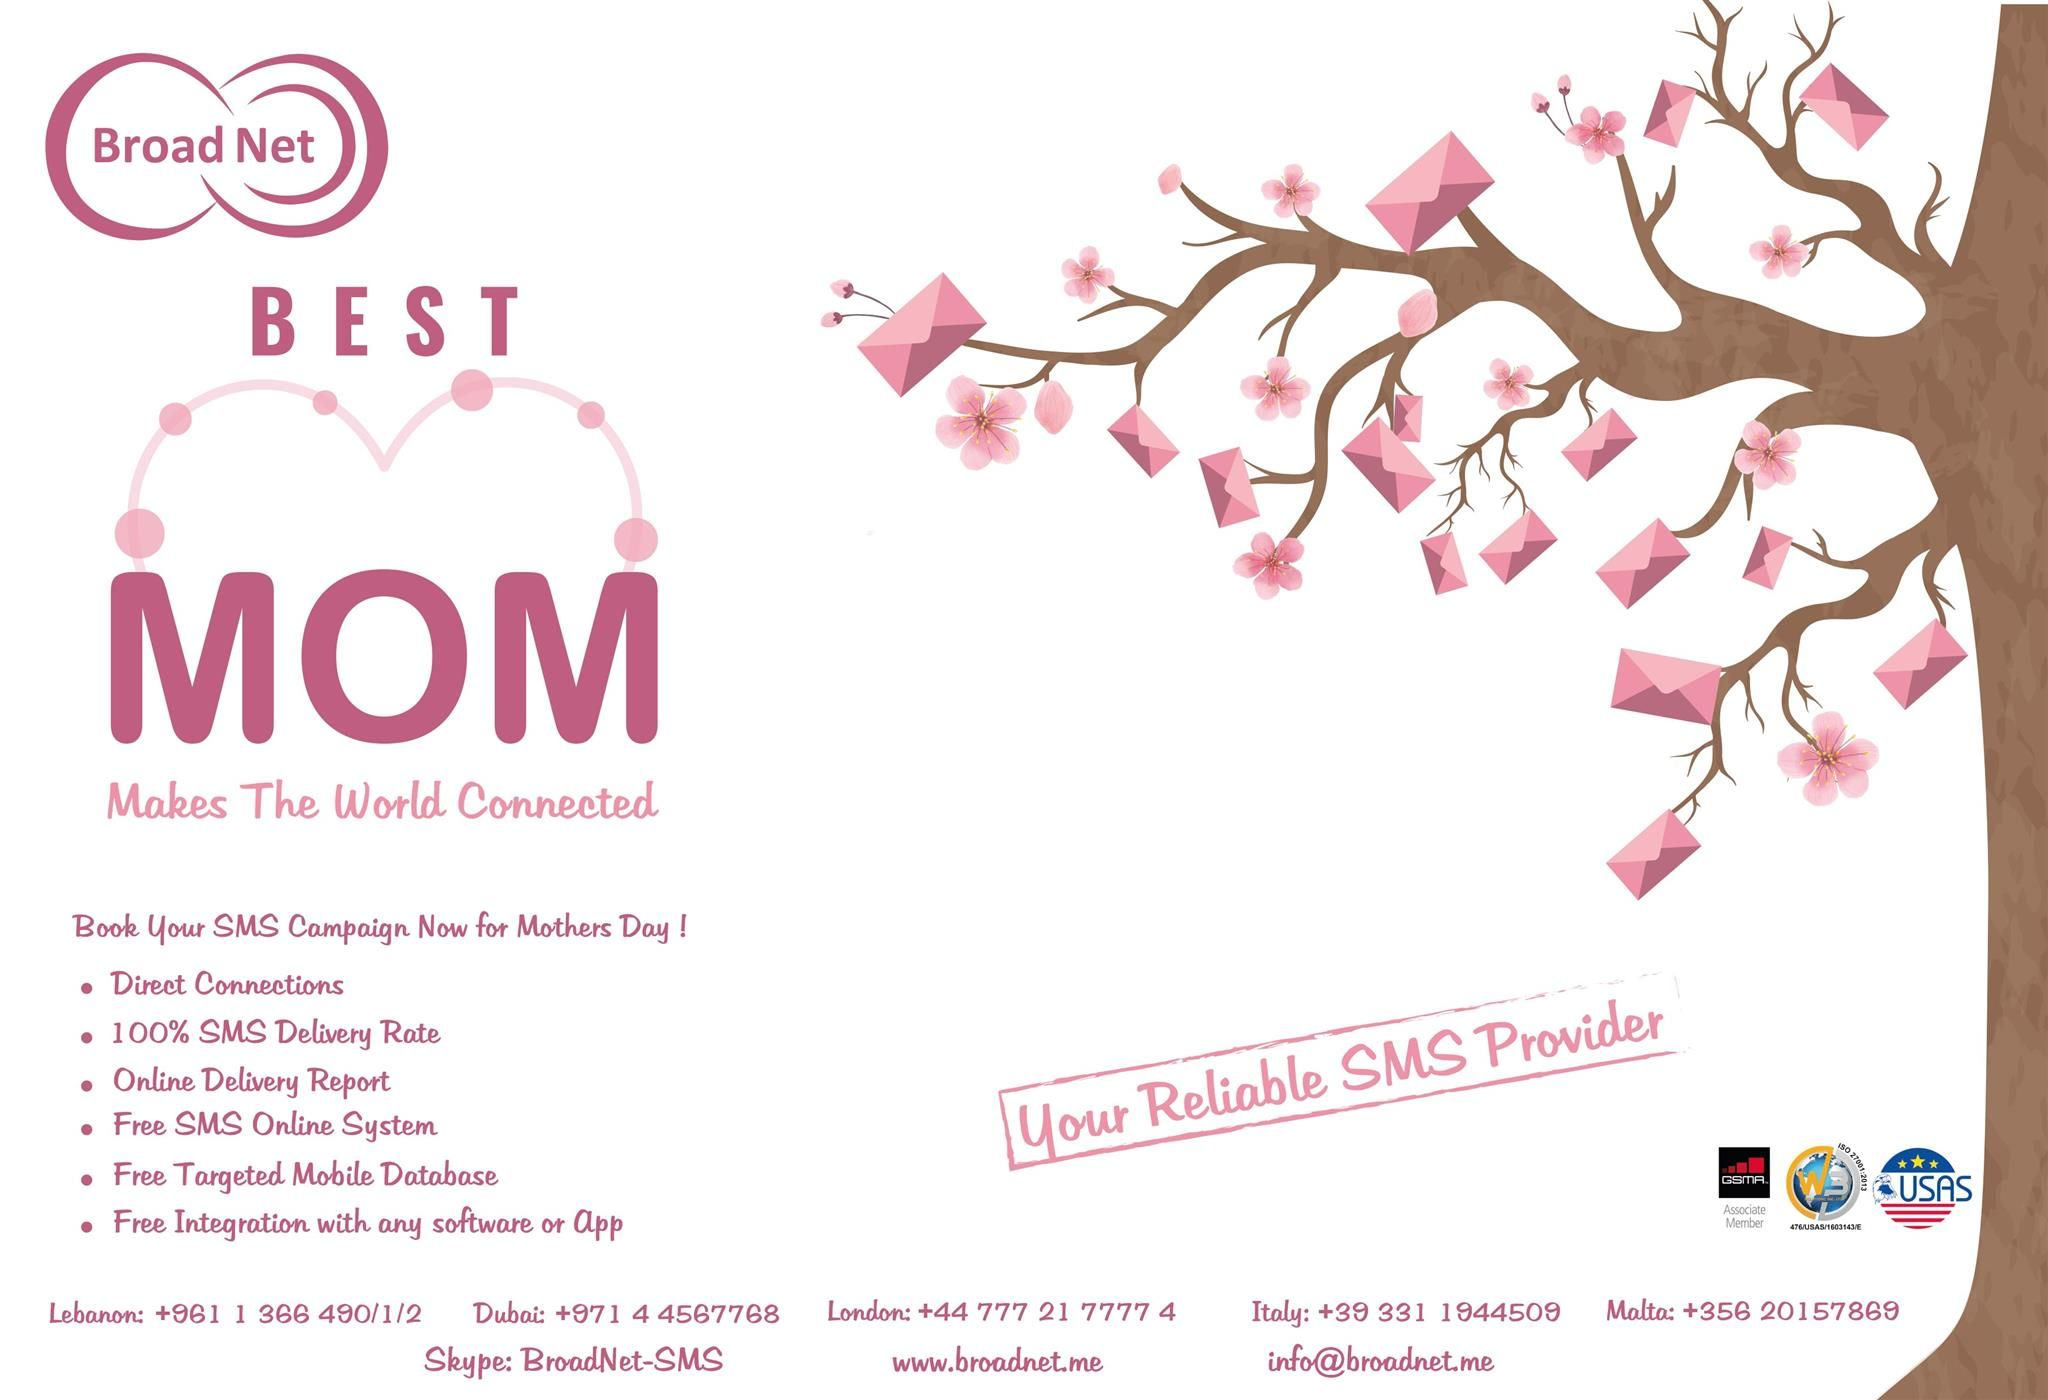 Book Your Bulk SMS Campaign Now for Mothers Day! Broadnet